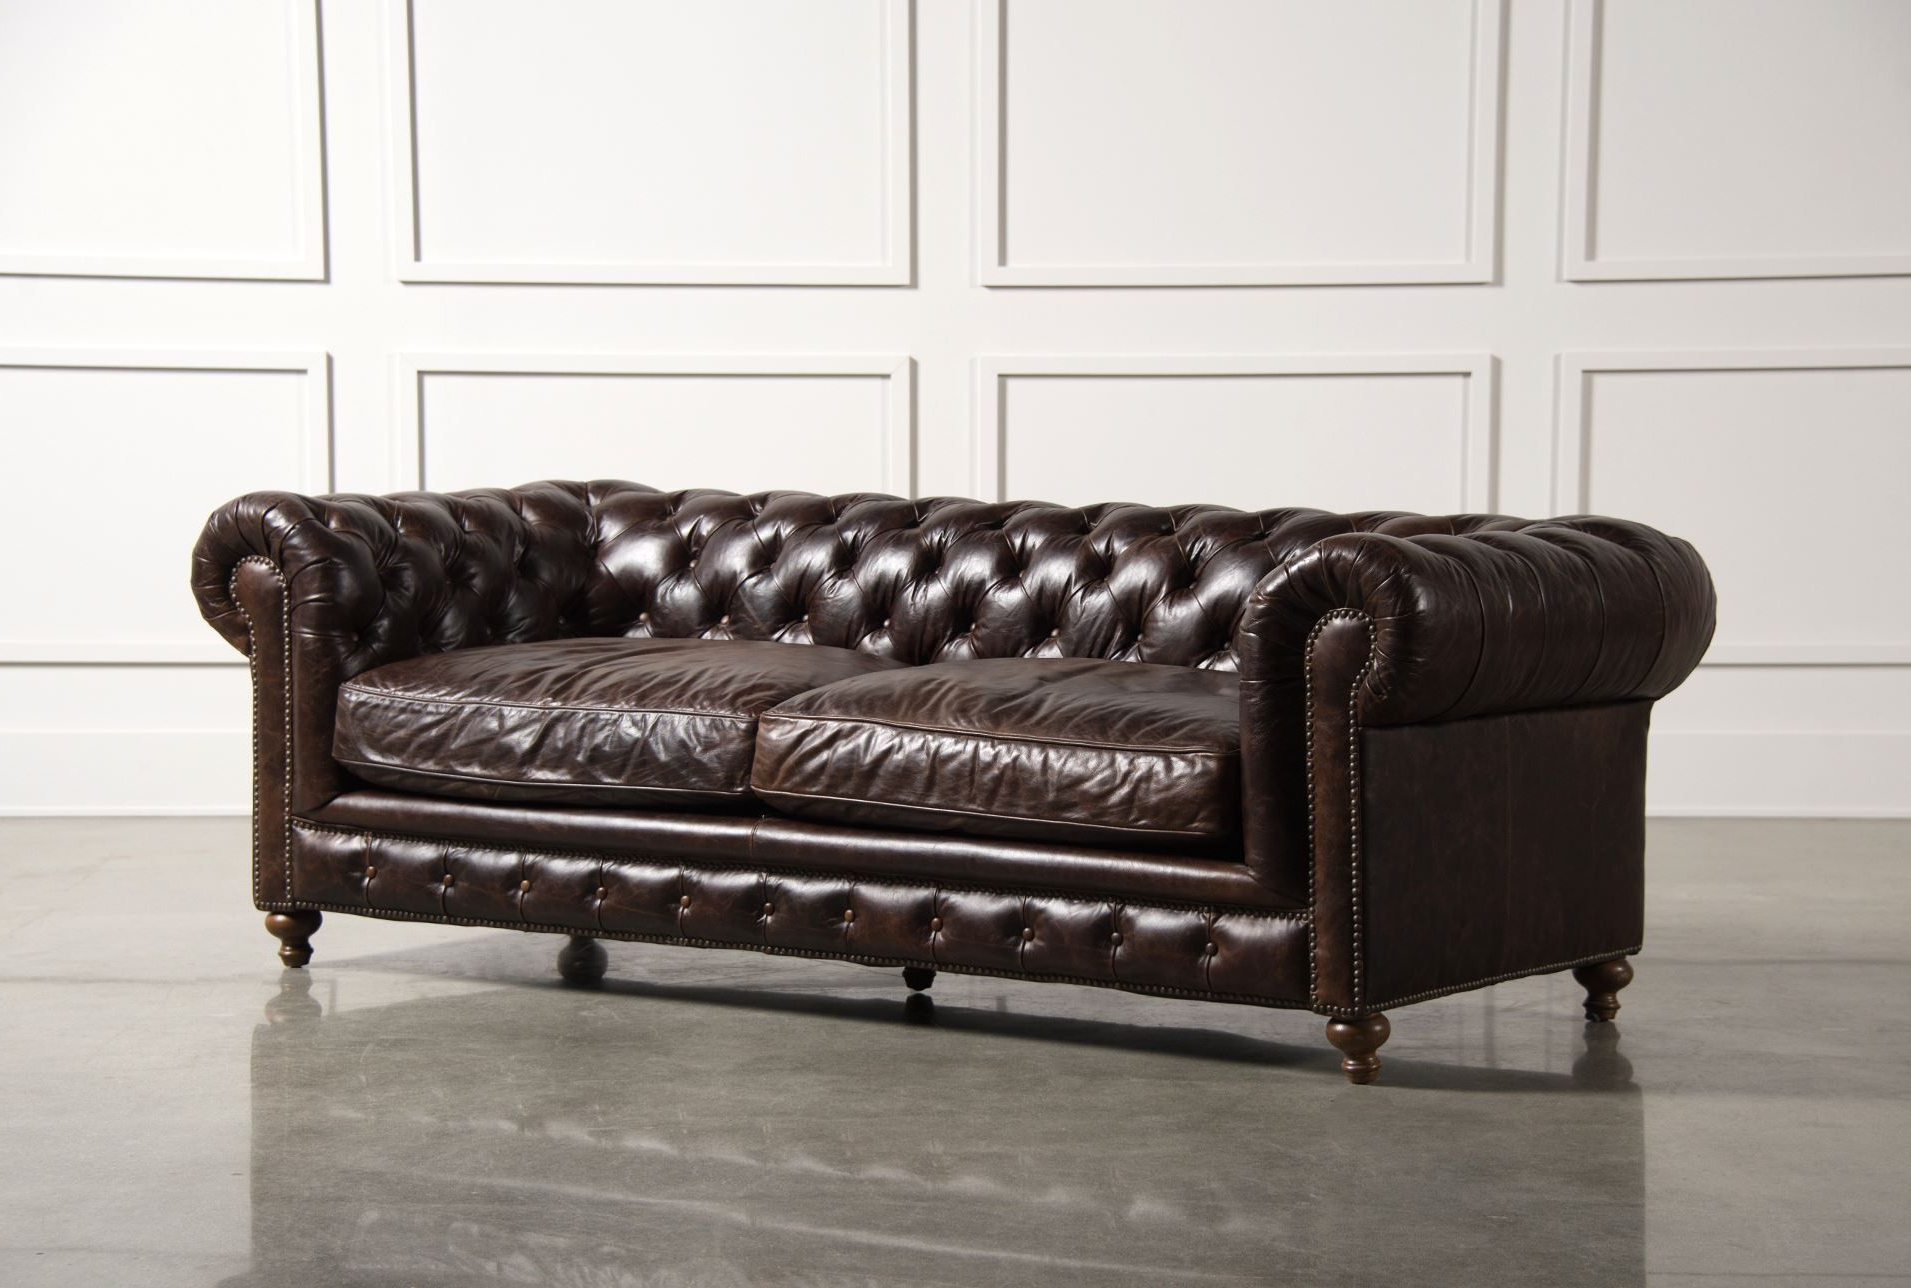 2019 Winthrop Sofa The Classic Lines Of This Chesterfield Sofa Is One Within Mansfield Graphite Velvet Sofa Chairs (View 3 of 20)